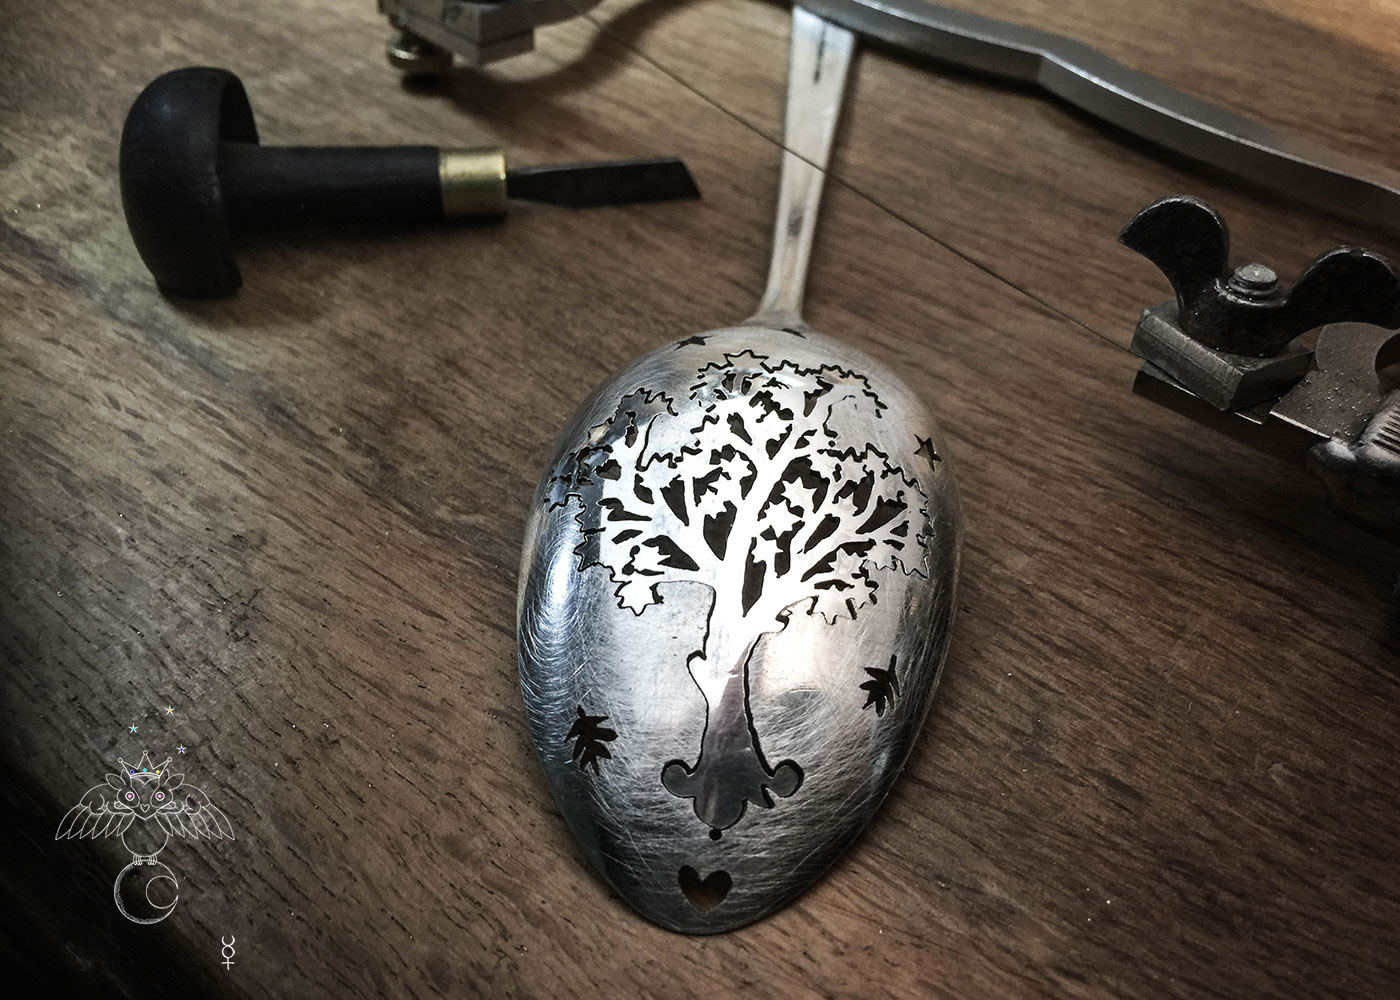 World tree jewellery - handmade and recycled antique spoon